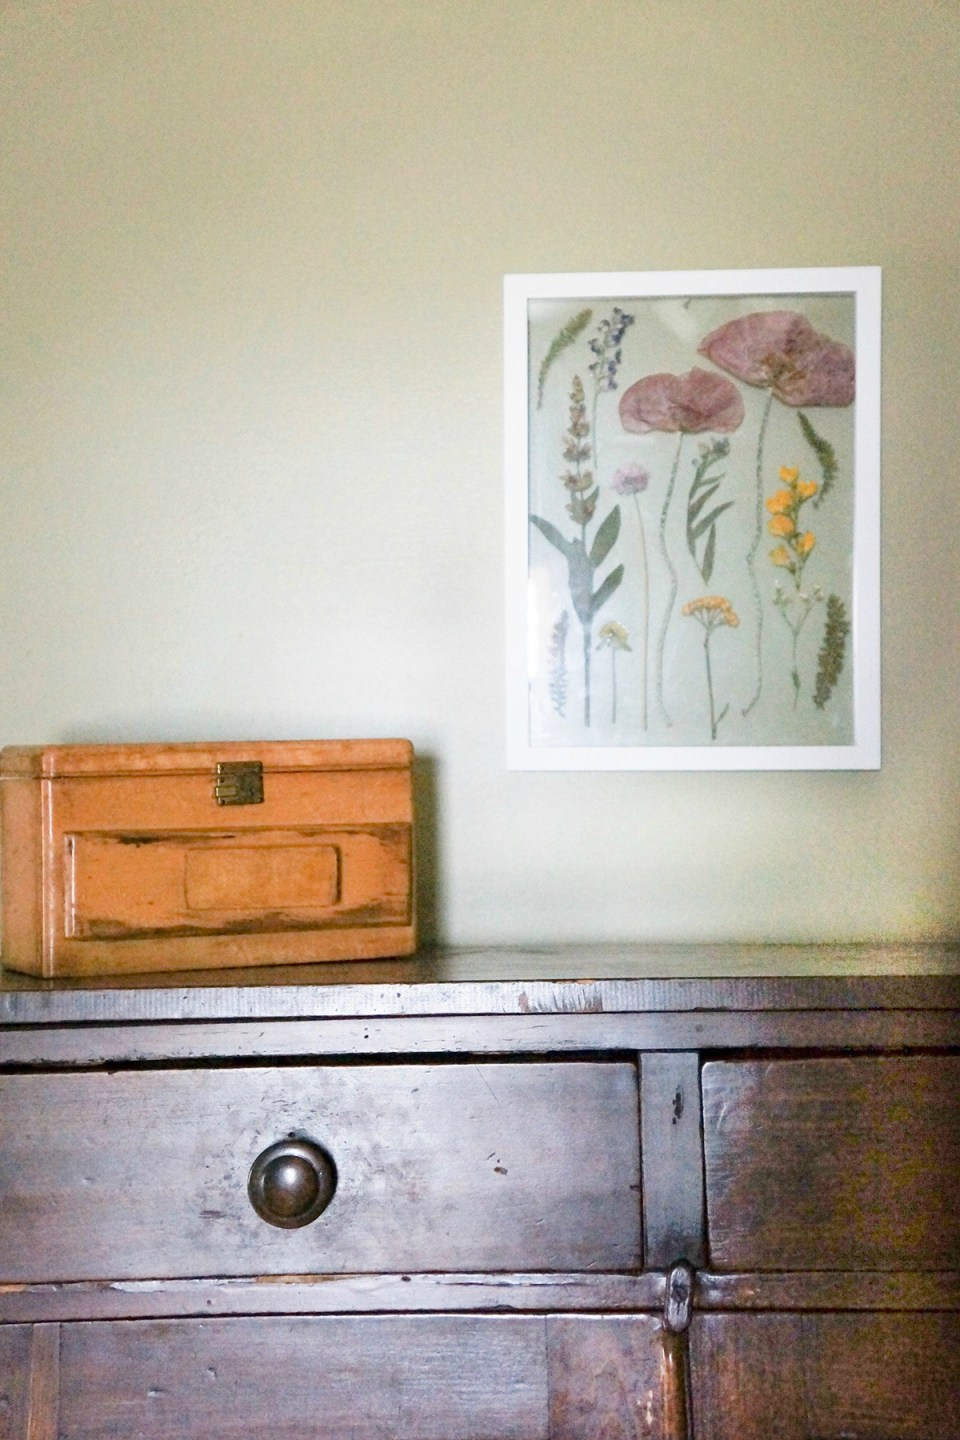 How To Make Framed Botanicals to Decorate Your Home